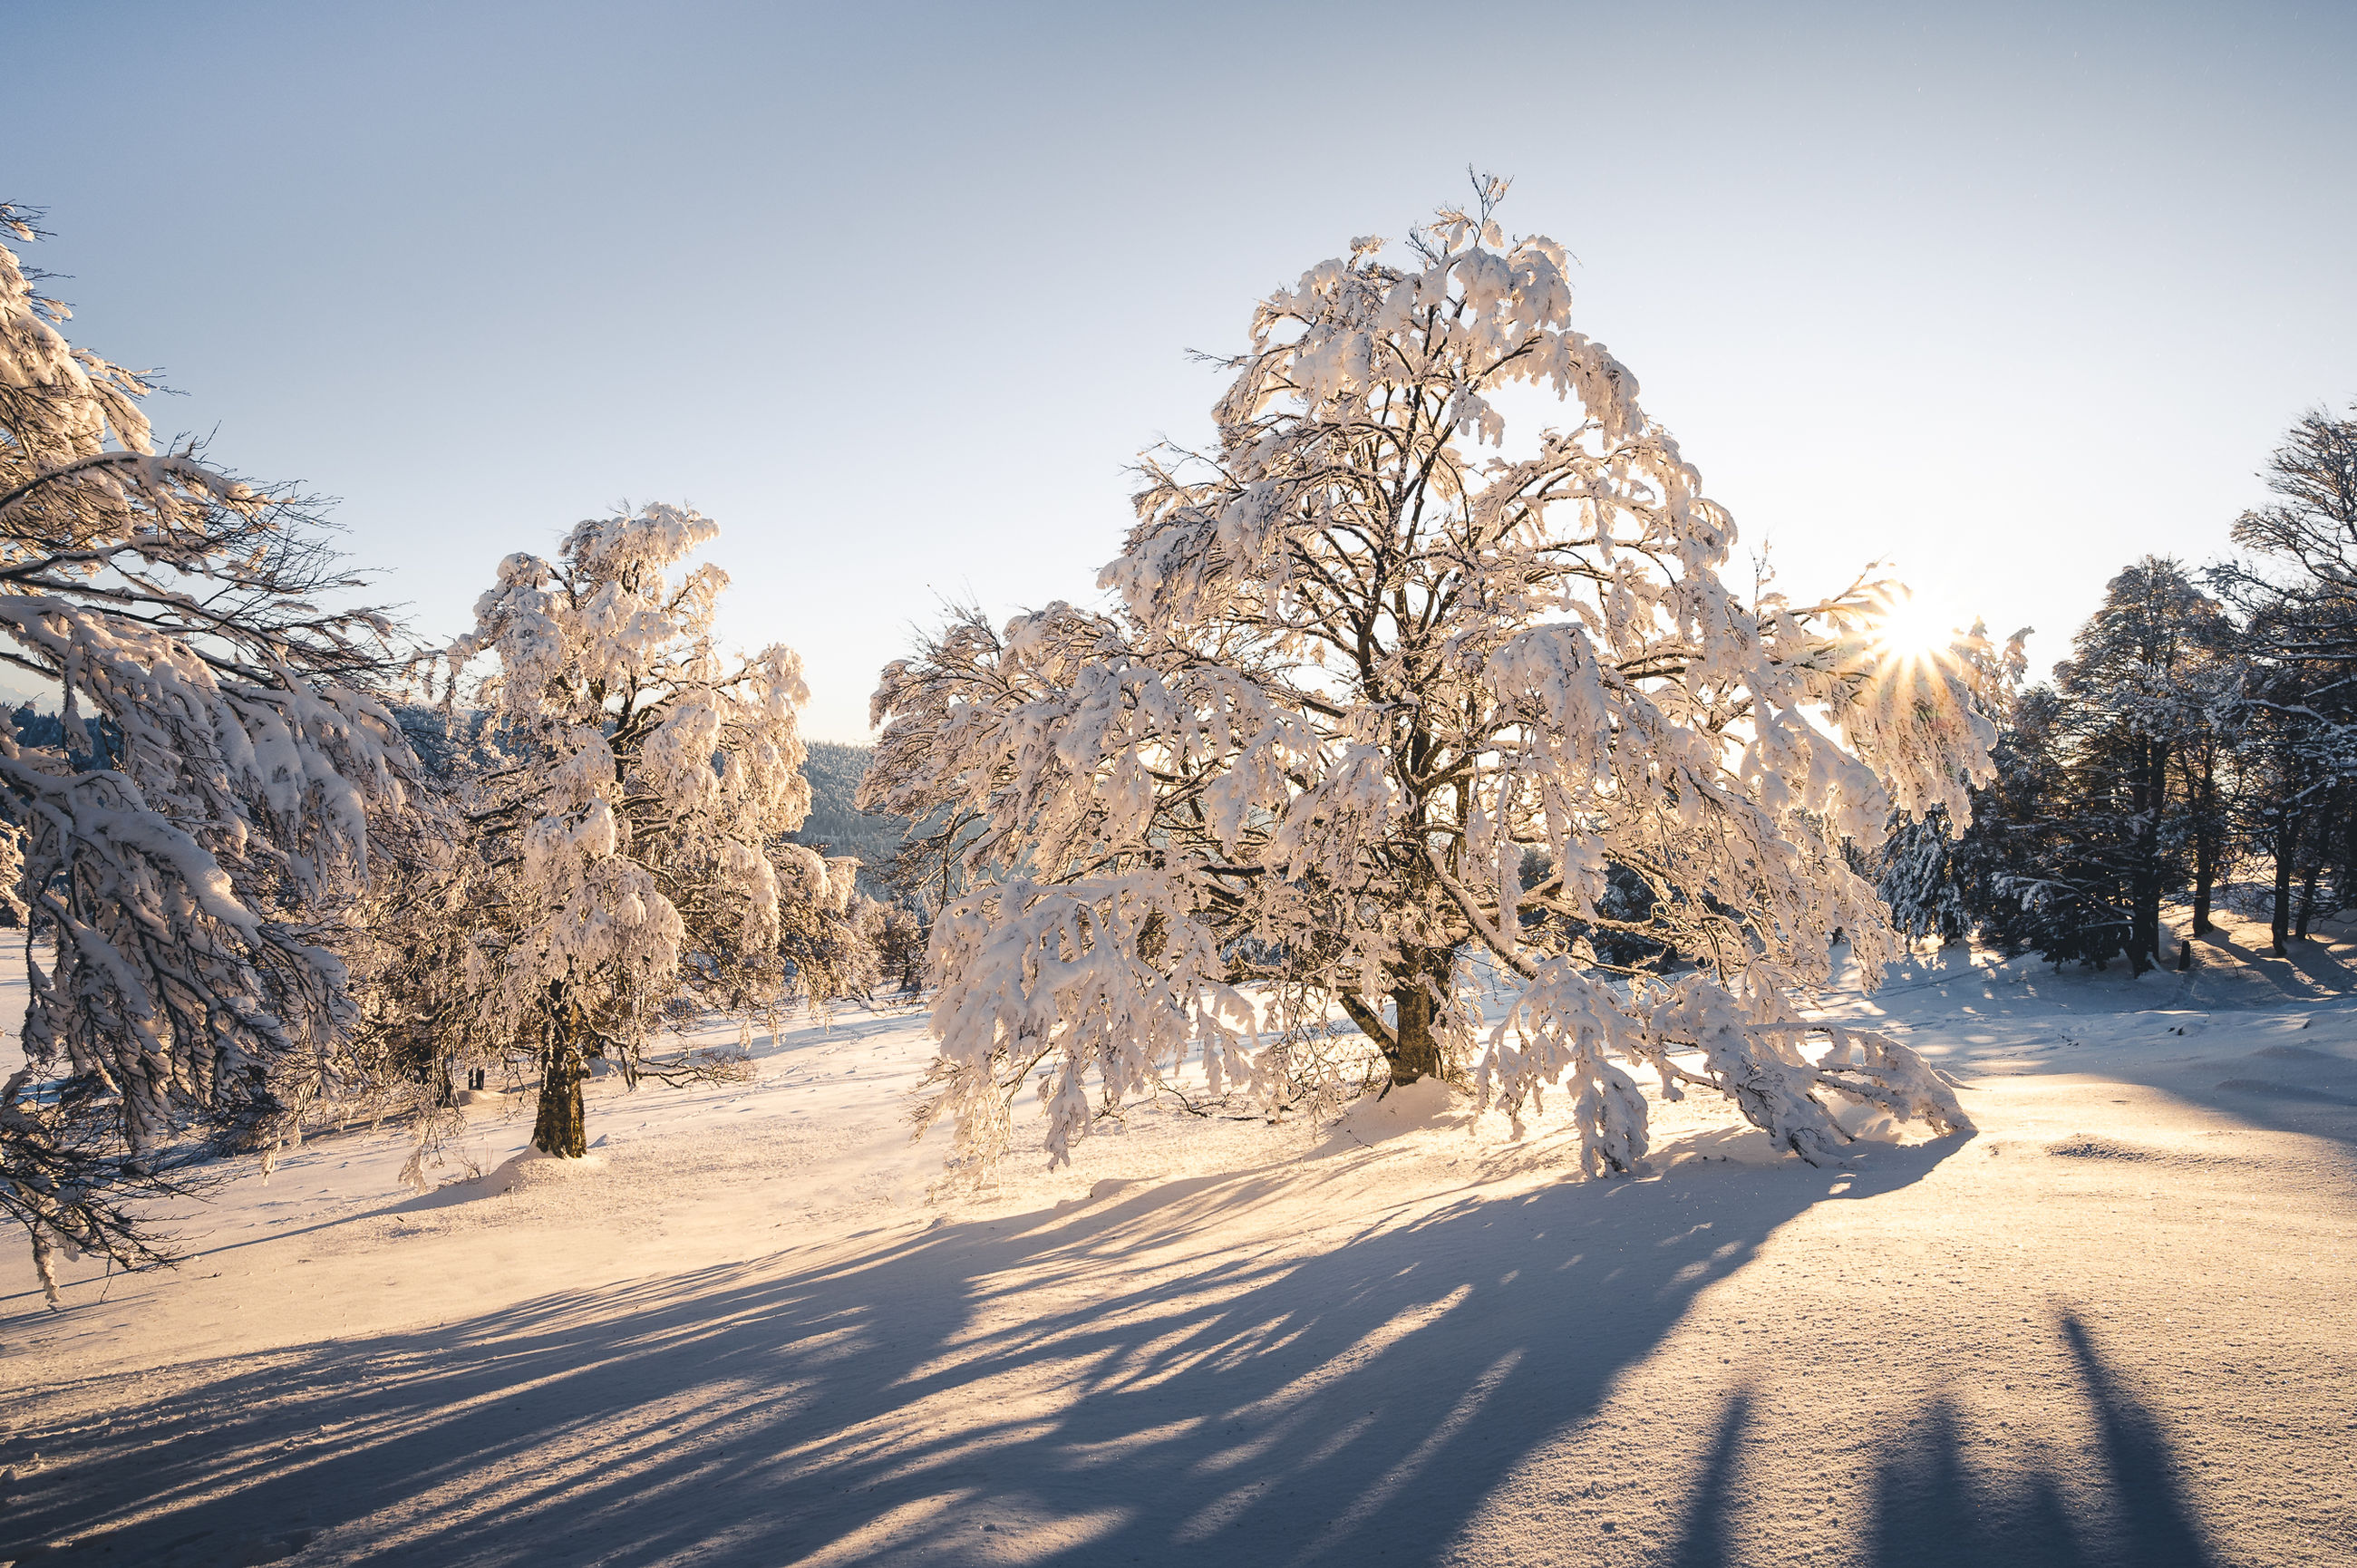 snow, cold temperature, winter, tree, nature, landscape, plant, environment, scenics - nature, beauty in nature, sky, land, coniferous tree, sunlight, pinaceae, pine tree, forest, pine woodland, mountain, frozen, tranquil scene, tranquility, blue, non-urban scene, travel, no people, road, white, shadow, travel destinations, sunny, woodland, mountain range, outdoors, ice, rural scene, frost, clear sky, polar climate, idyllic, freezing, day, sun, tourism, snowcapped mountain, morning, panoramic, footpath